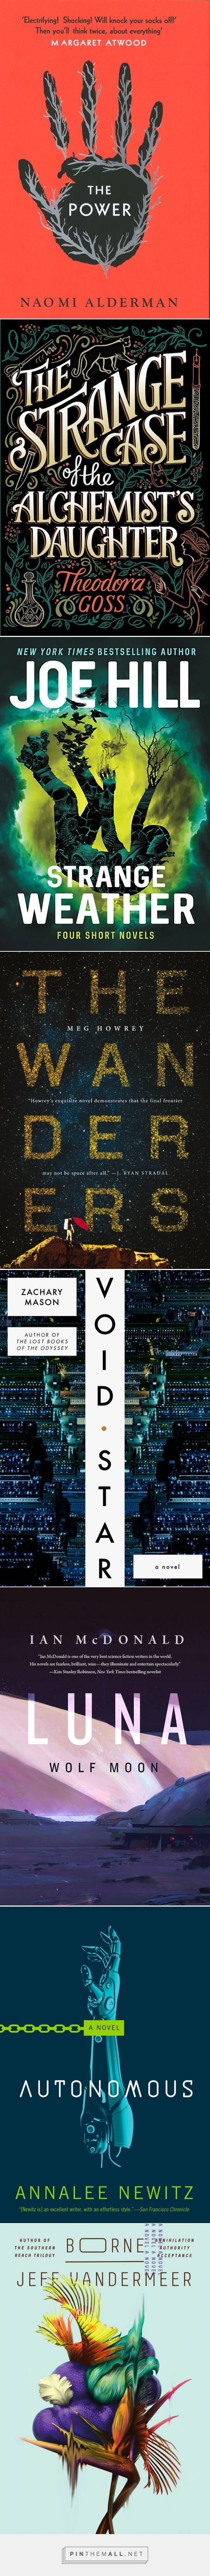 The best science fiction, fantasy, and horror novels of 2017 - The Verge #sciencefictionbooks